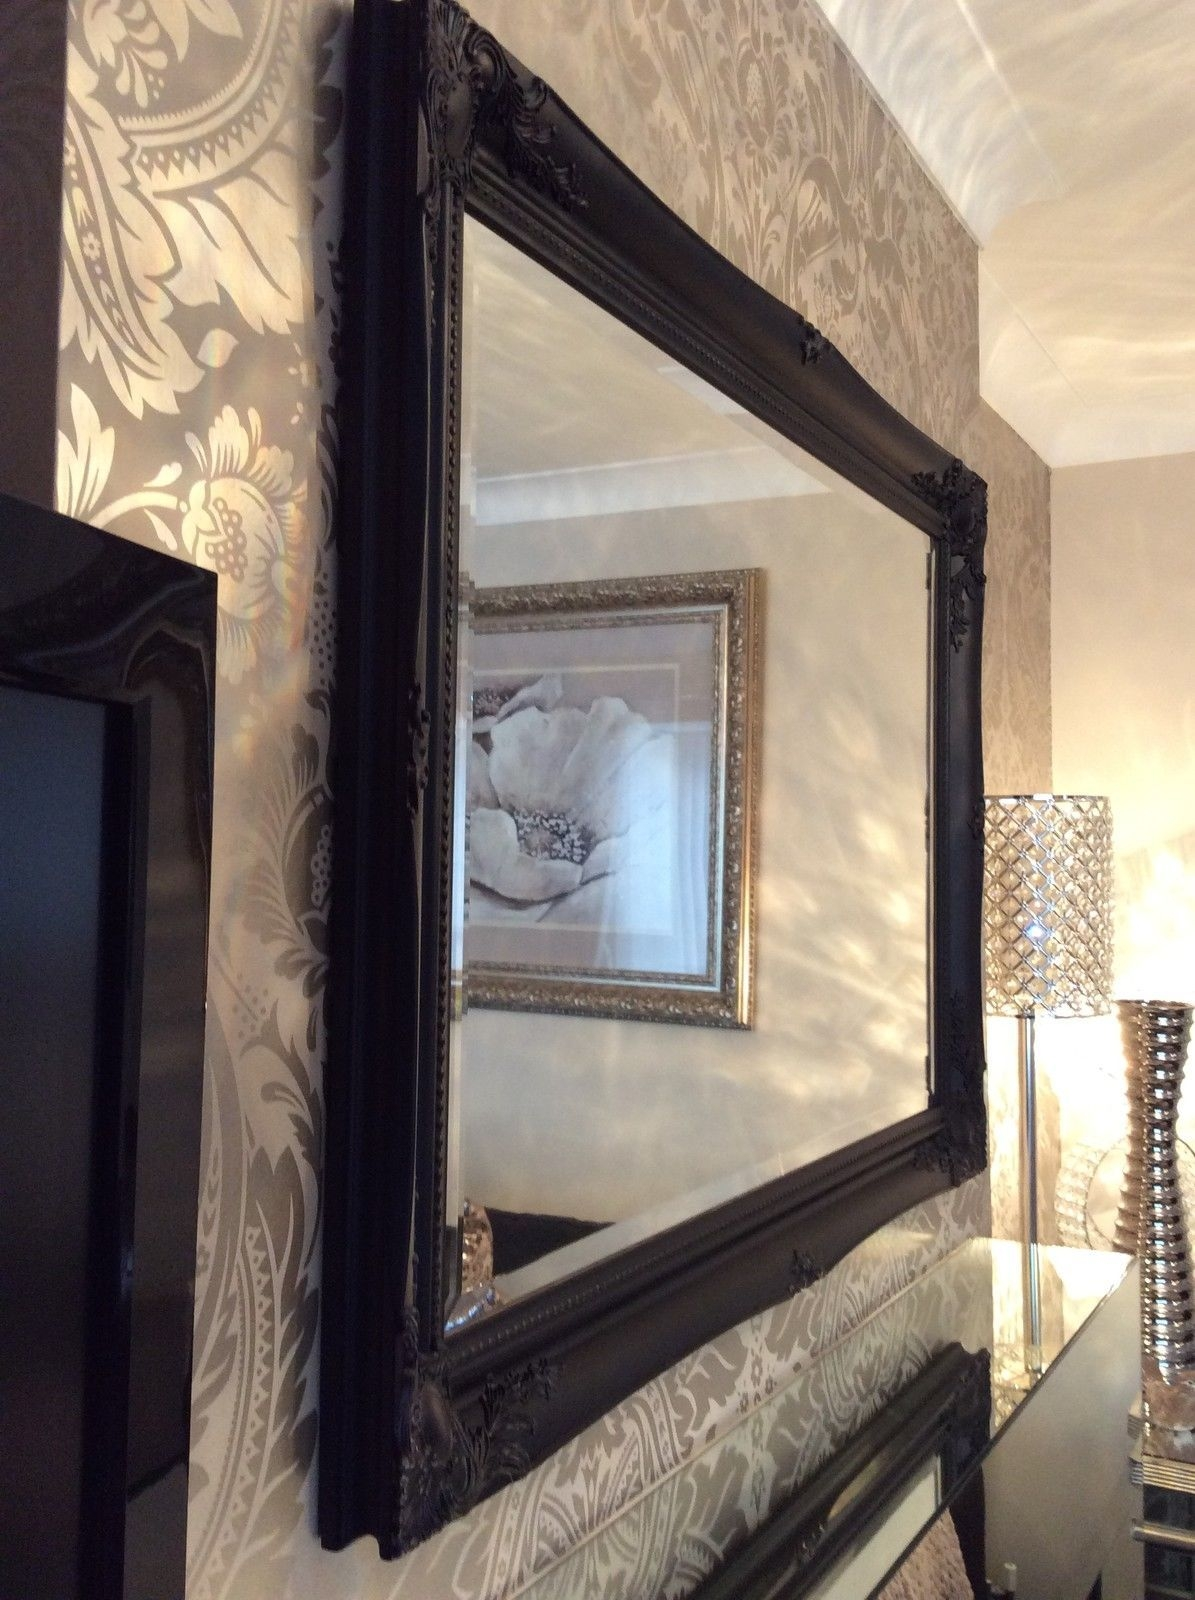 Black Shab Chic Framed Ornate Overmantle Wall Mirror Range Of With Large Black Mirrors (View 7 of 15)